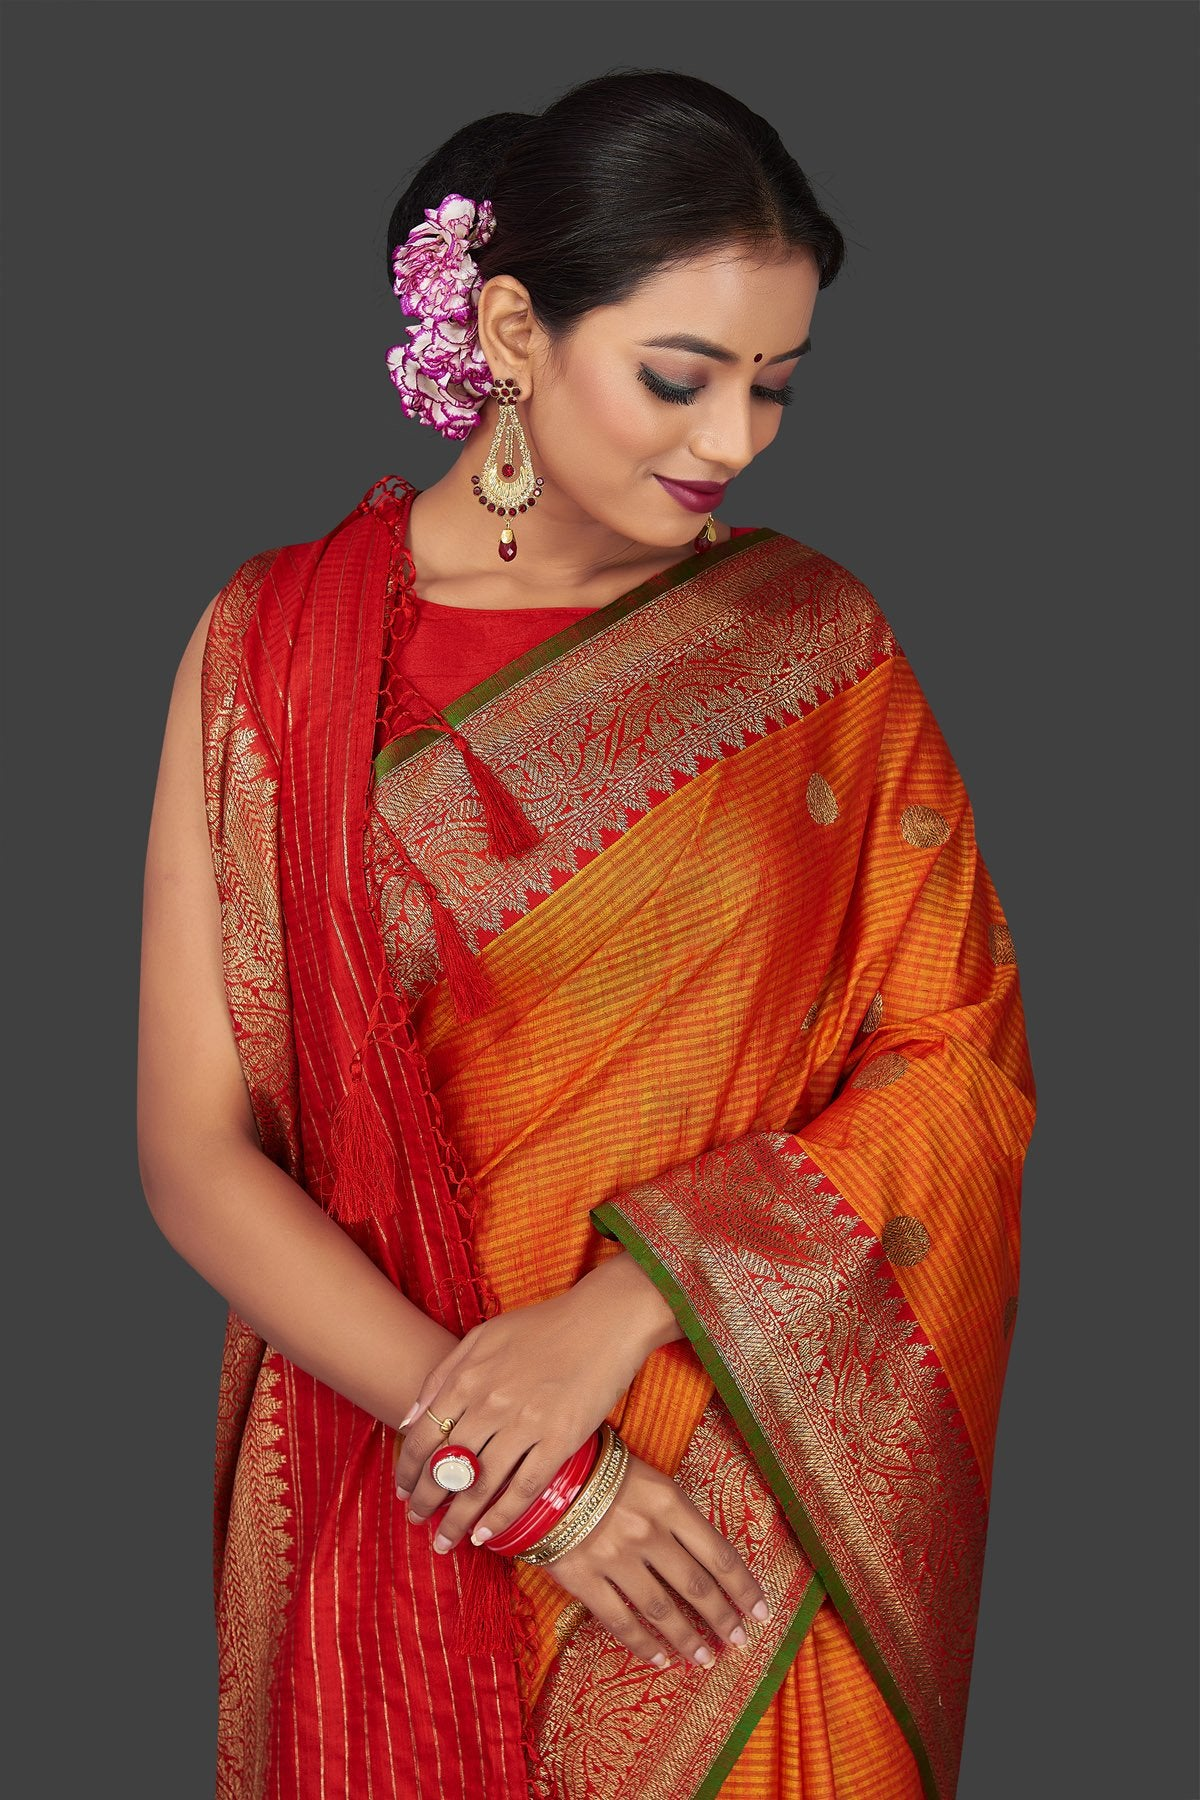 Shop beautiful orange tassar Banarasi saree online in USA with antique zari red border and zari buta. Garner compliments on weddings and special occasions with exquisite Banarasi saris, handwoven silk sarees, tussar sarees from Pure Elegance Indian fashion store in USA.-closeup